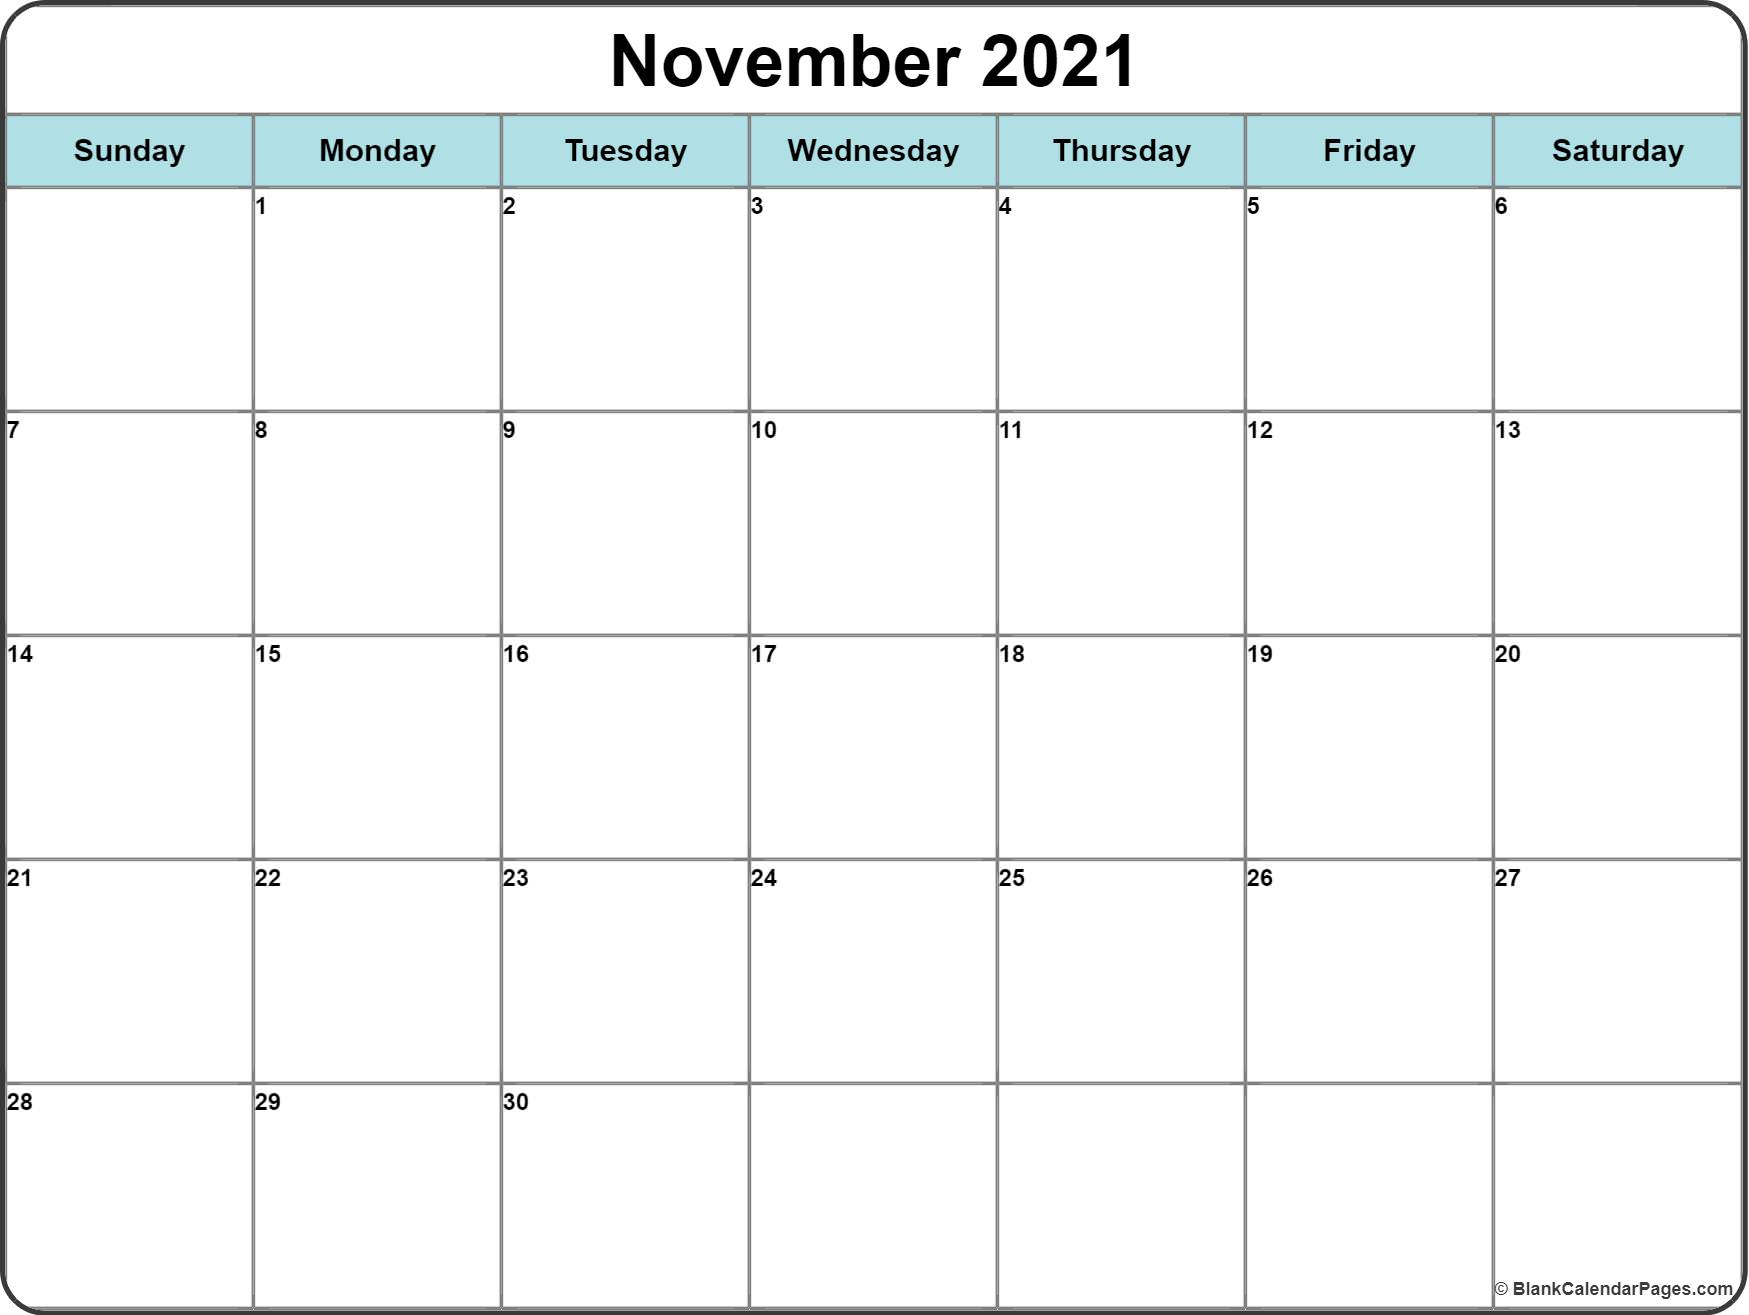 November 2018 calendar * 51+ templates of printable calendars